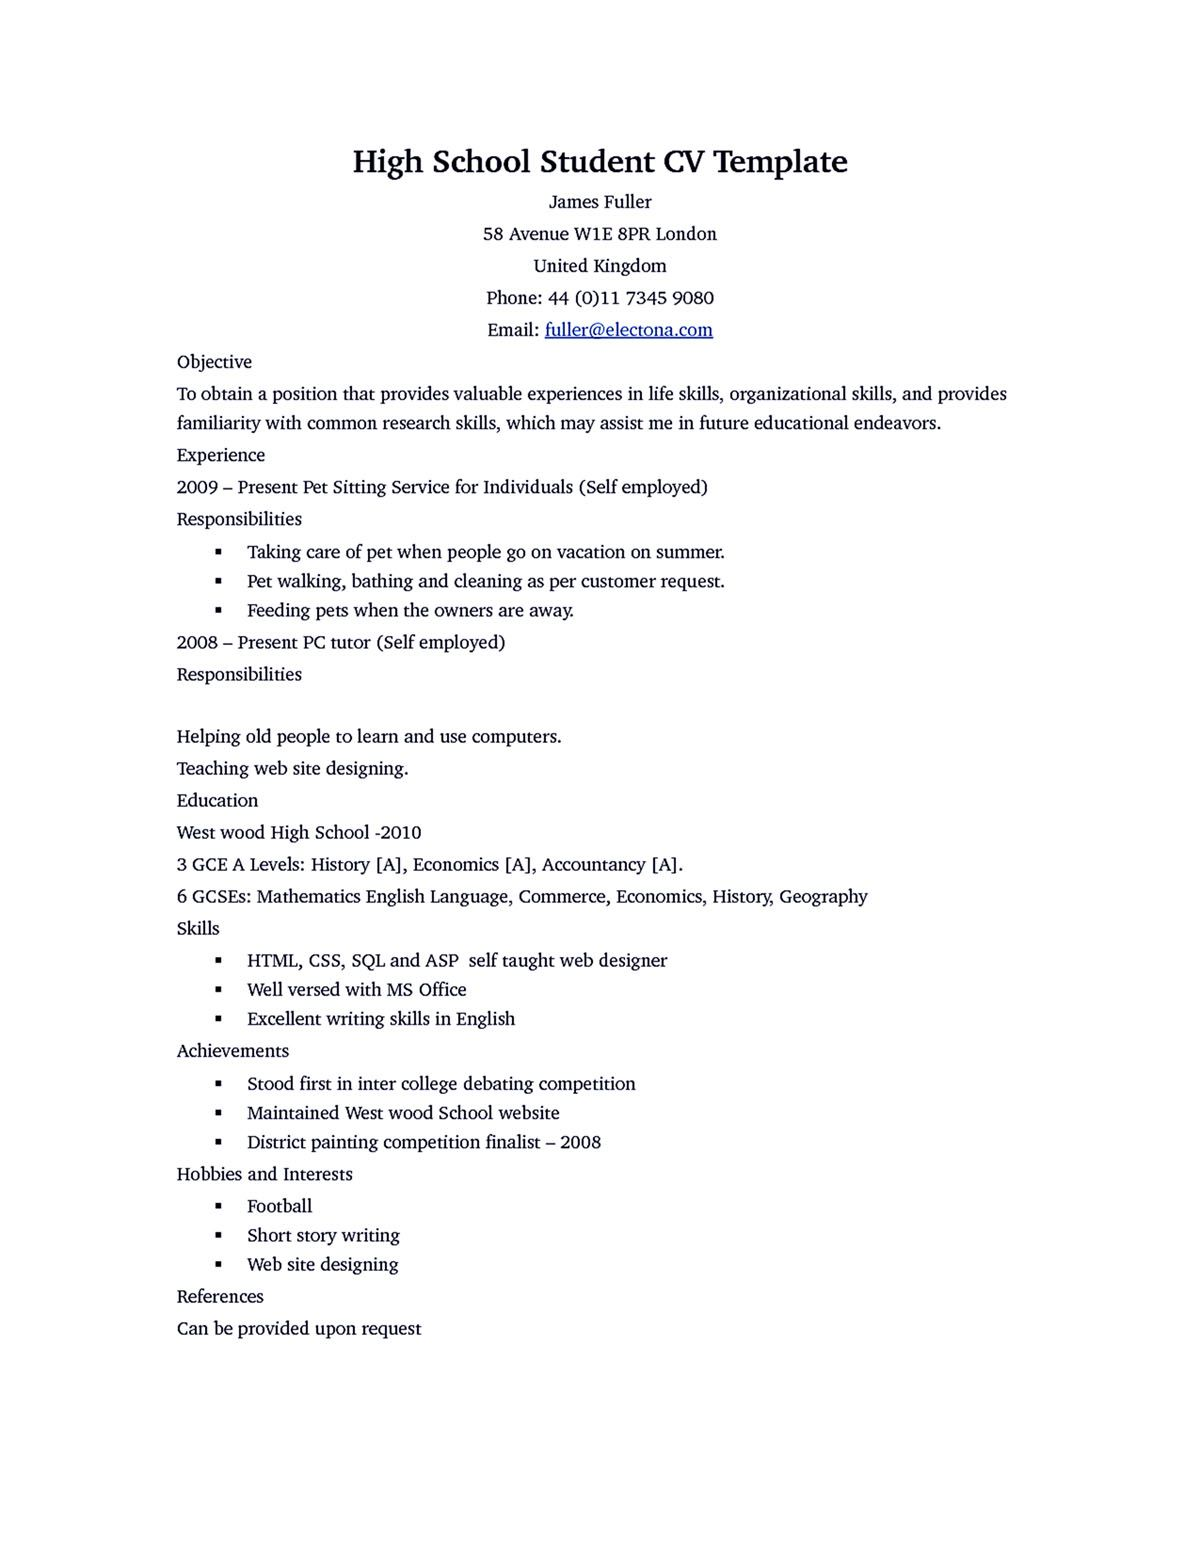 Academic Resume Template Academic Resume Template Shows You How The Layout Of An Academic